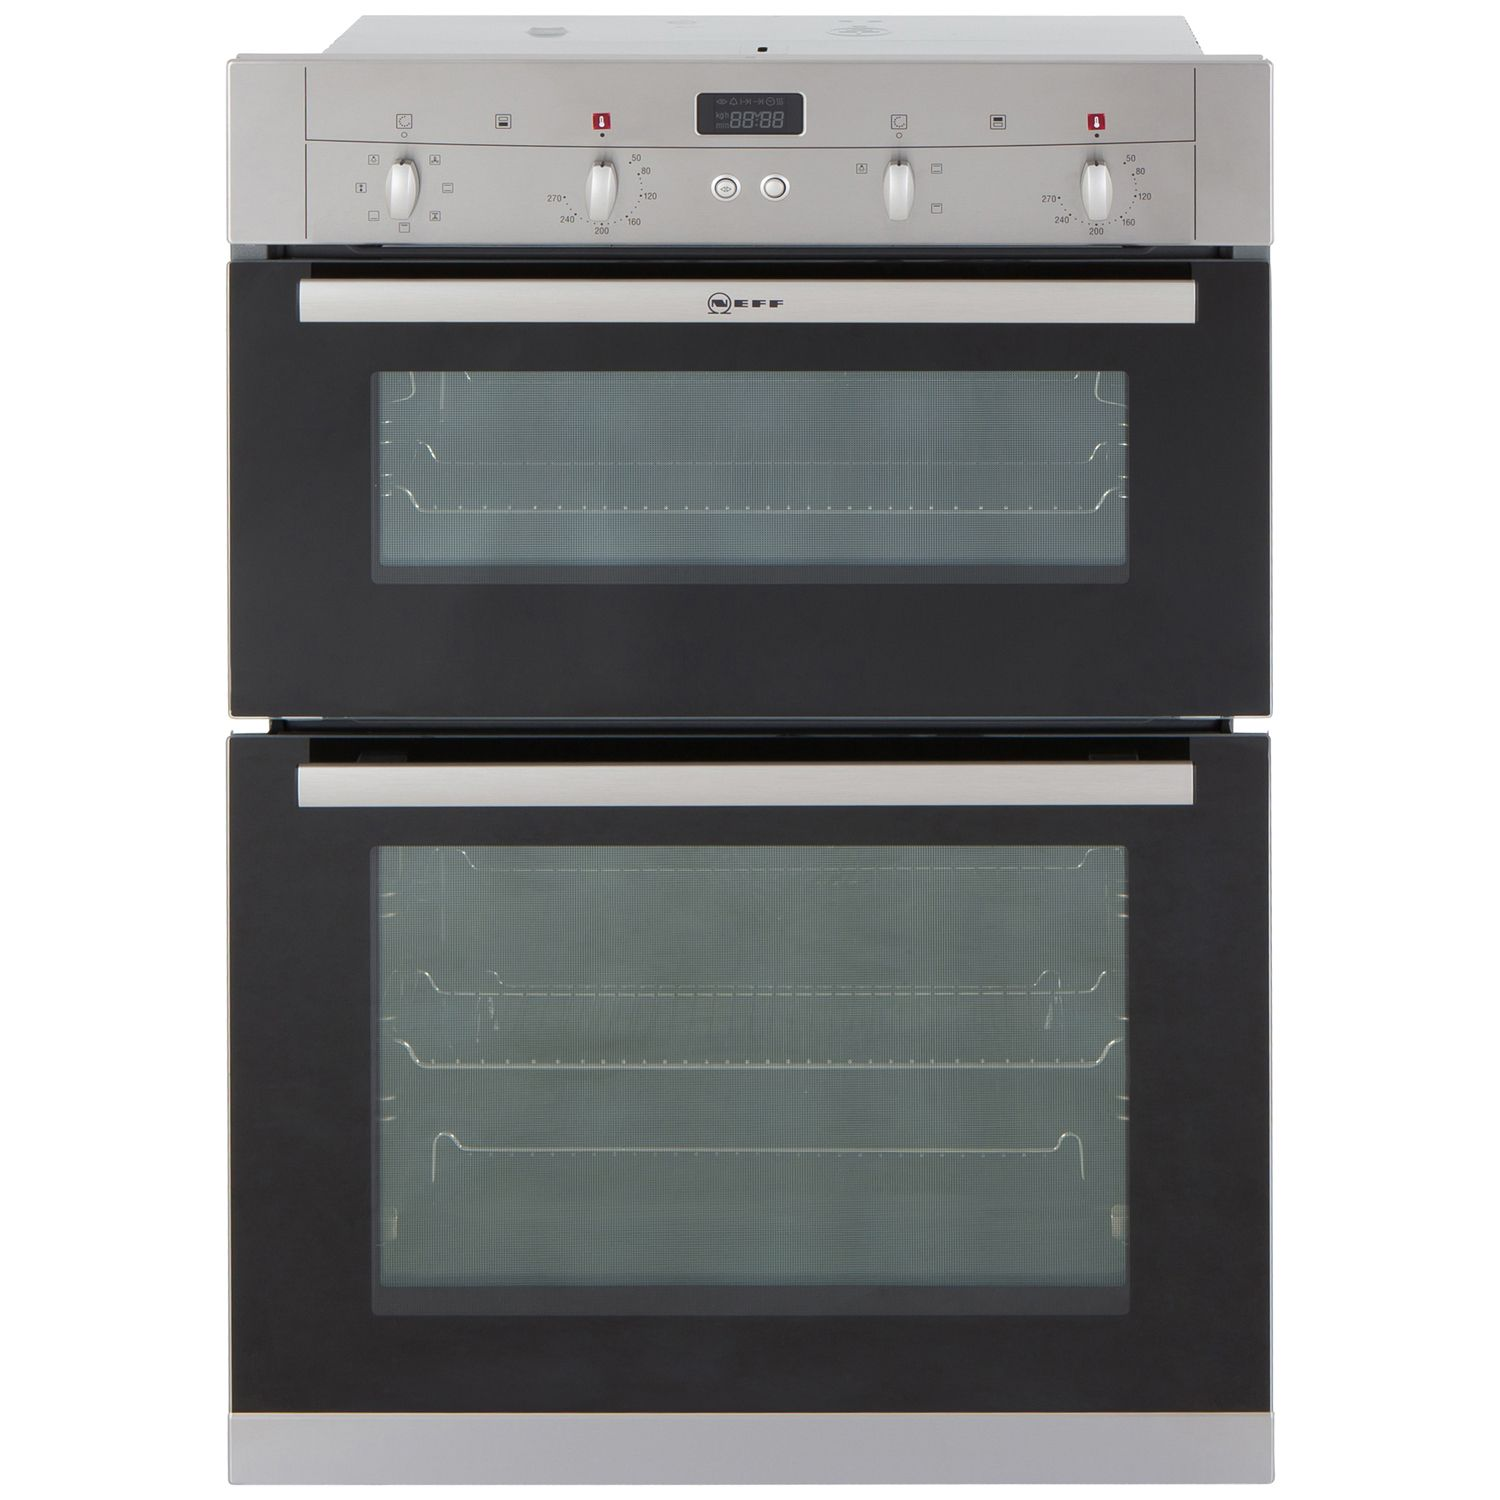 NEFF Built In Double Electric Oven | Fan oven, Oven and Electric oven